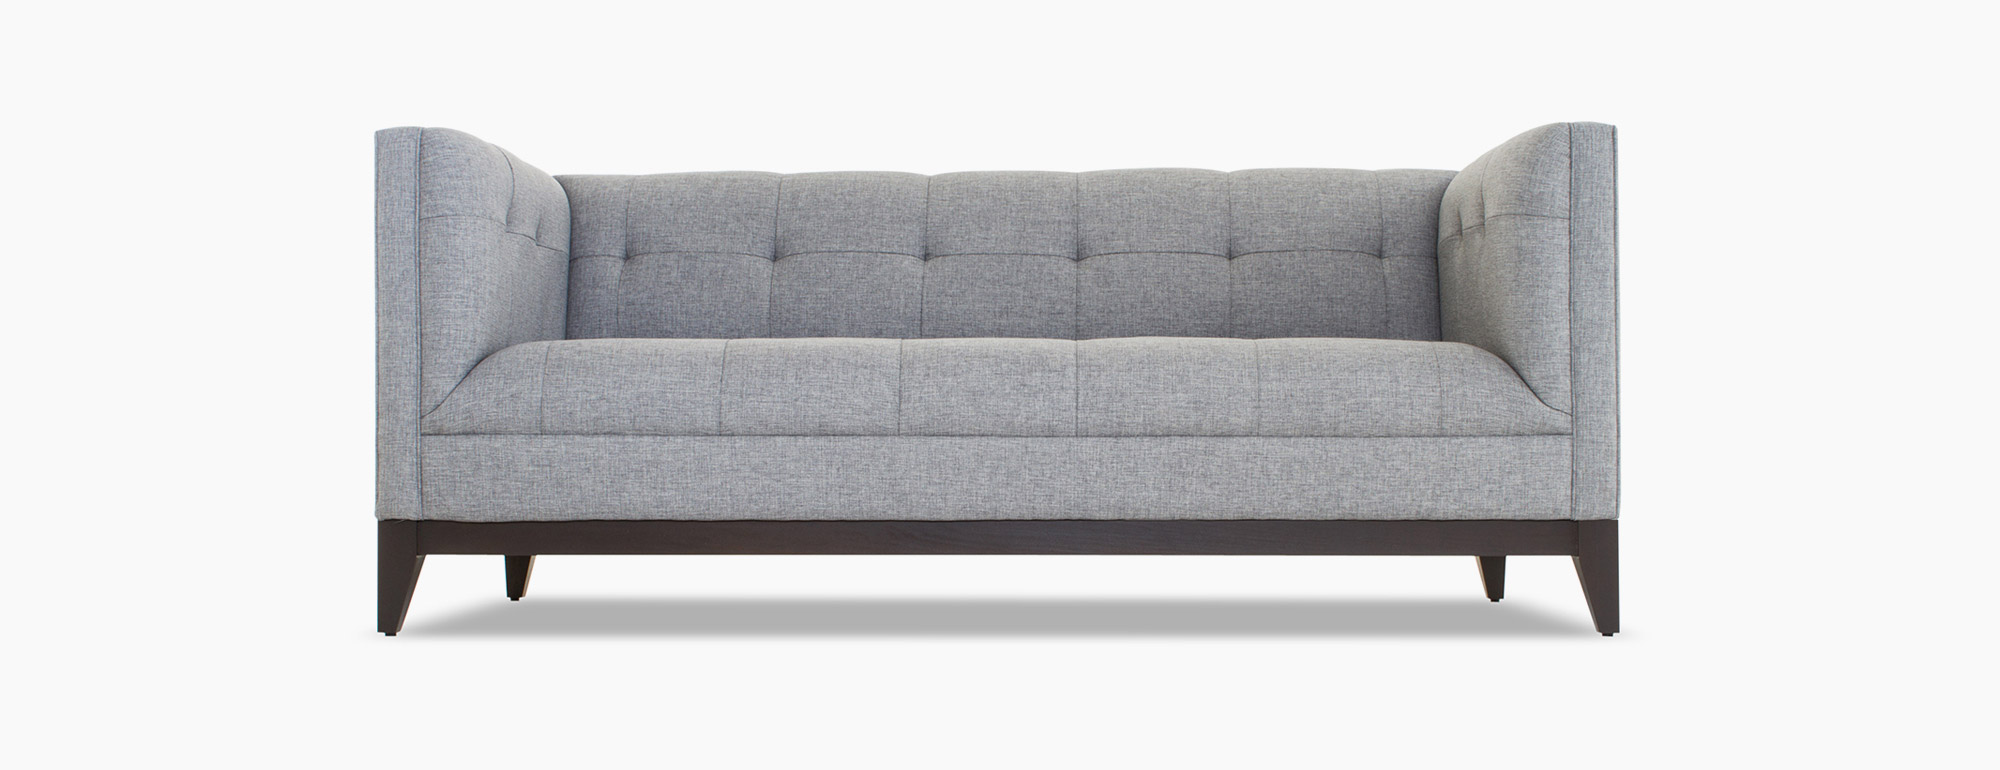 hero-stowe-loveseat-1